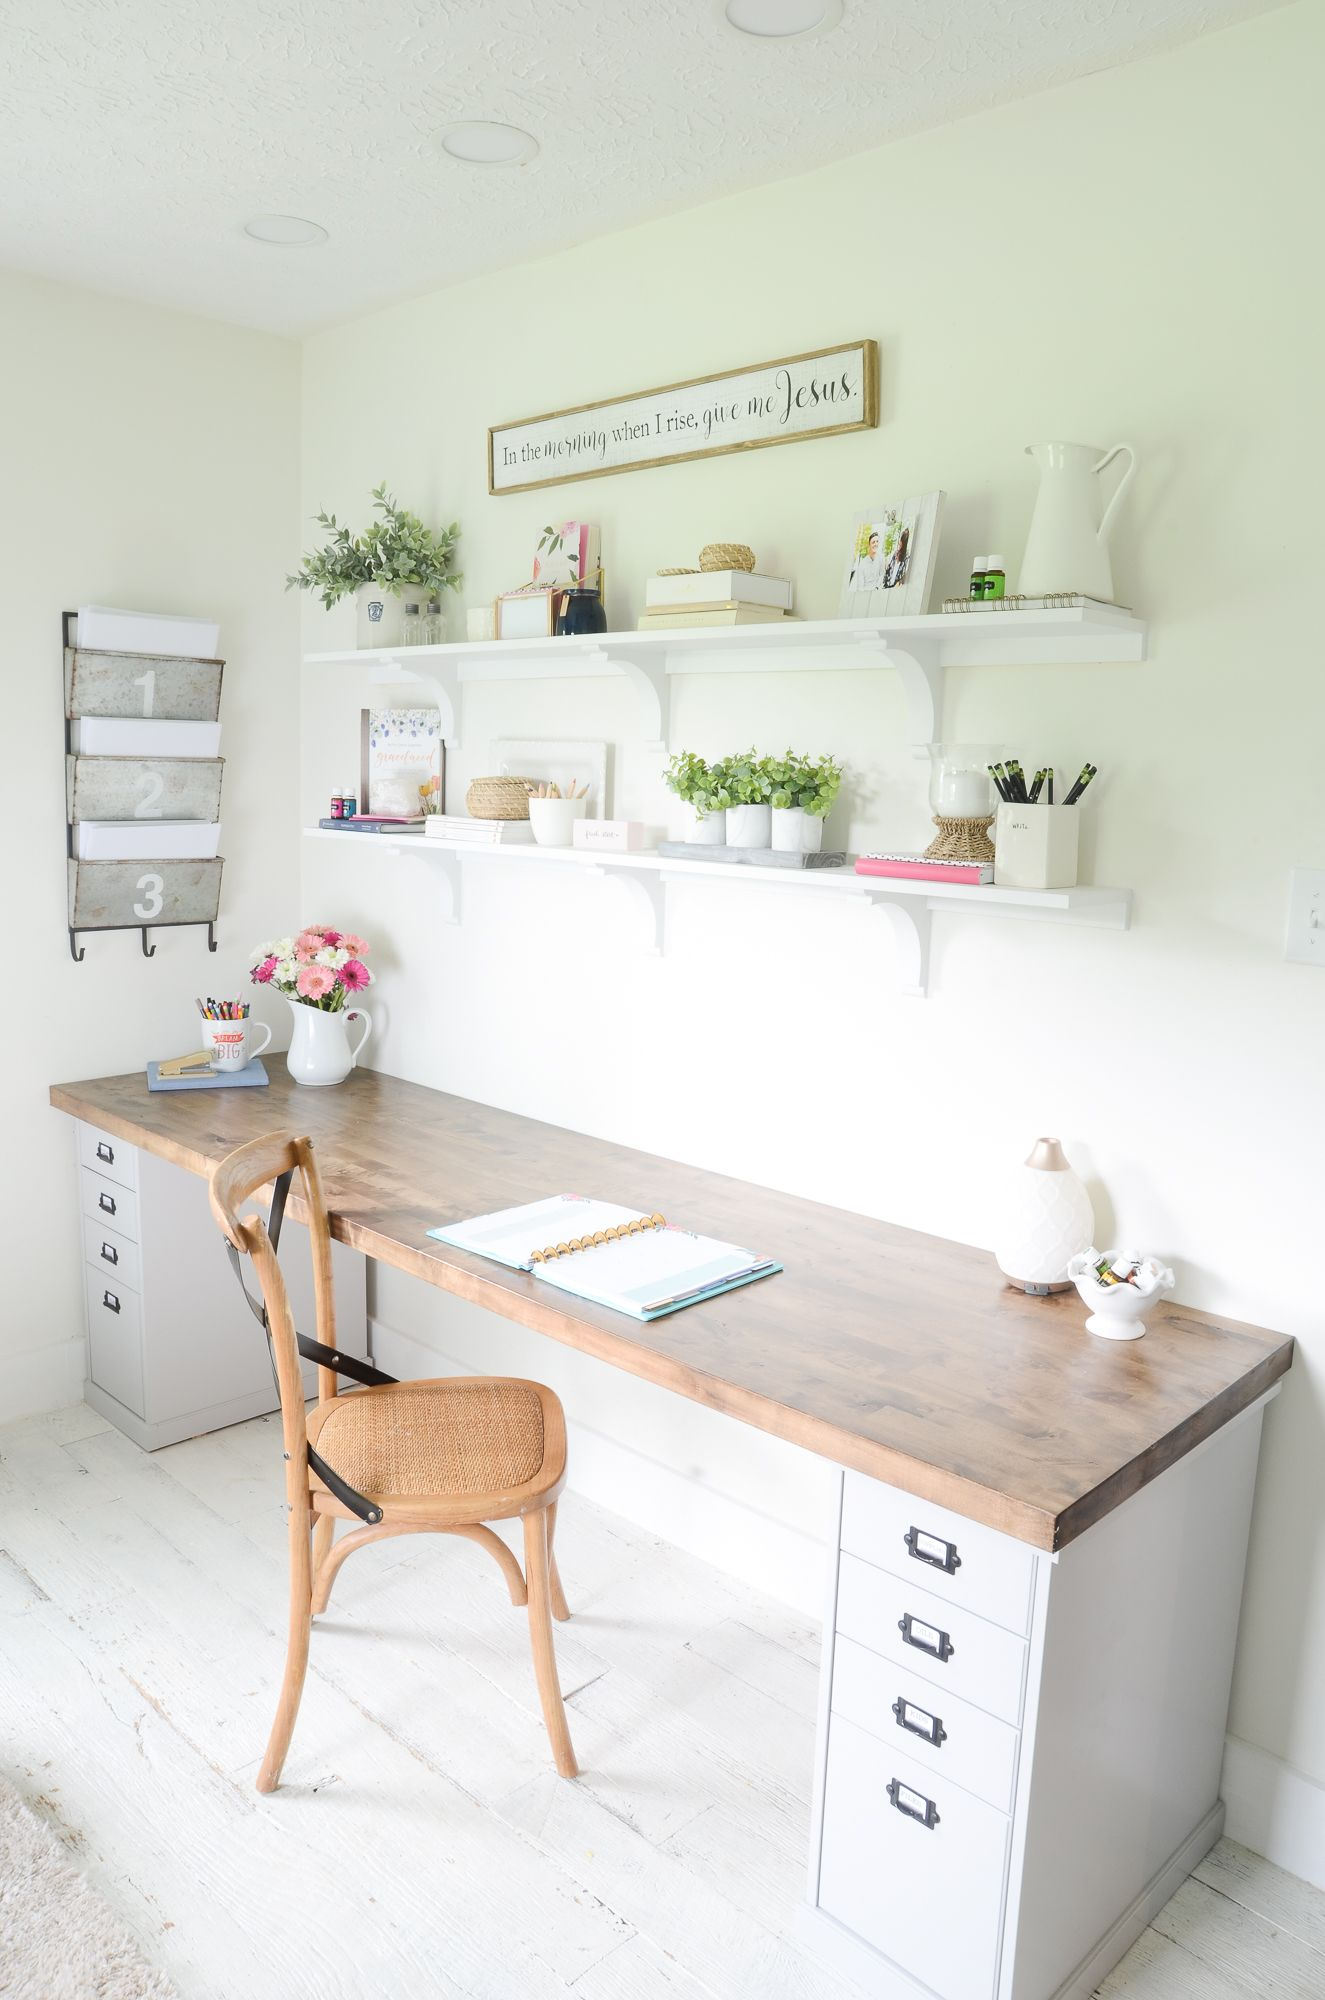 Diy Butcher Block Desk For My Home Office Butcher Block Desk